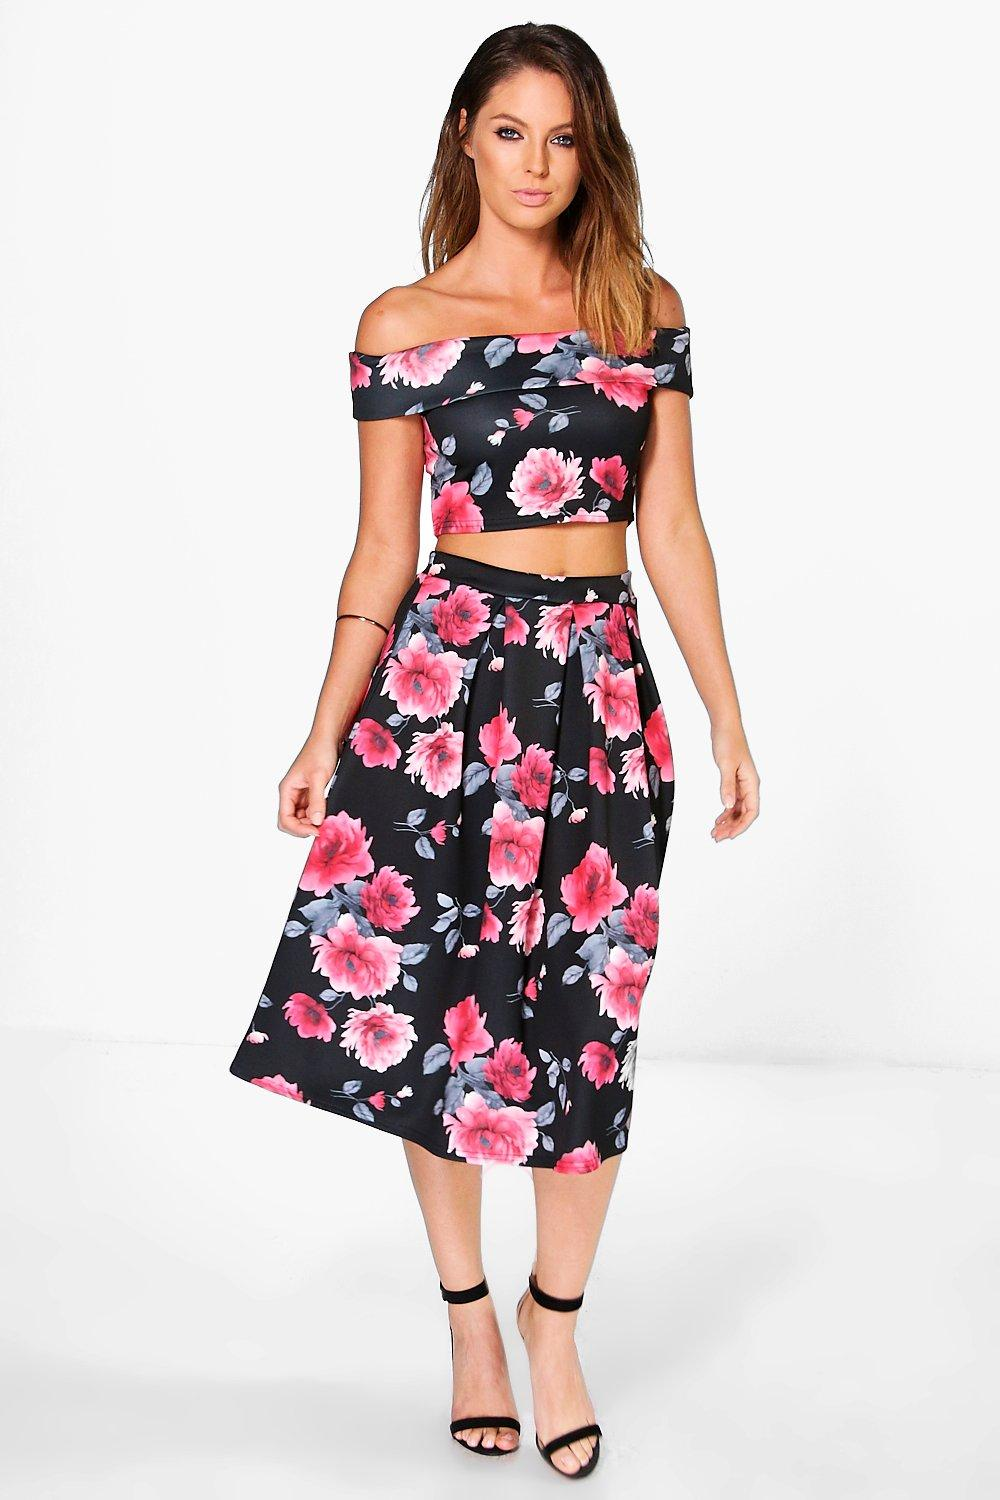 Ivy Off The Shoulder Dark Floral Crop And Midi Skirt Co-Ord